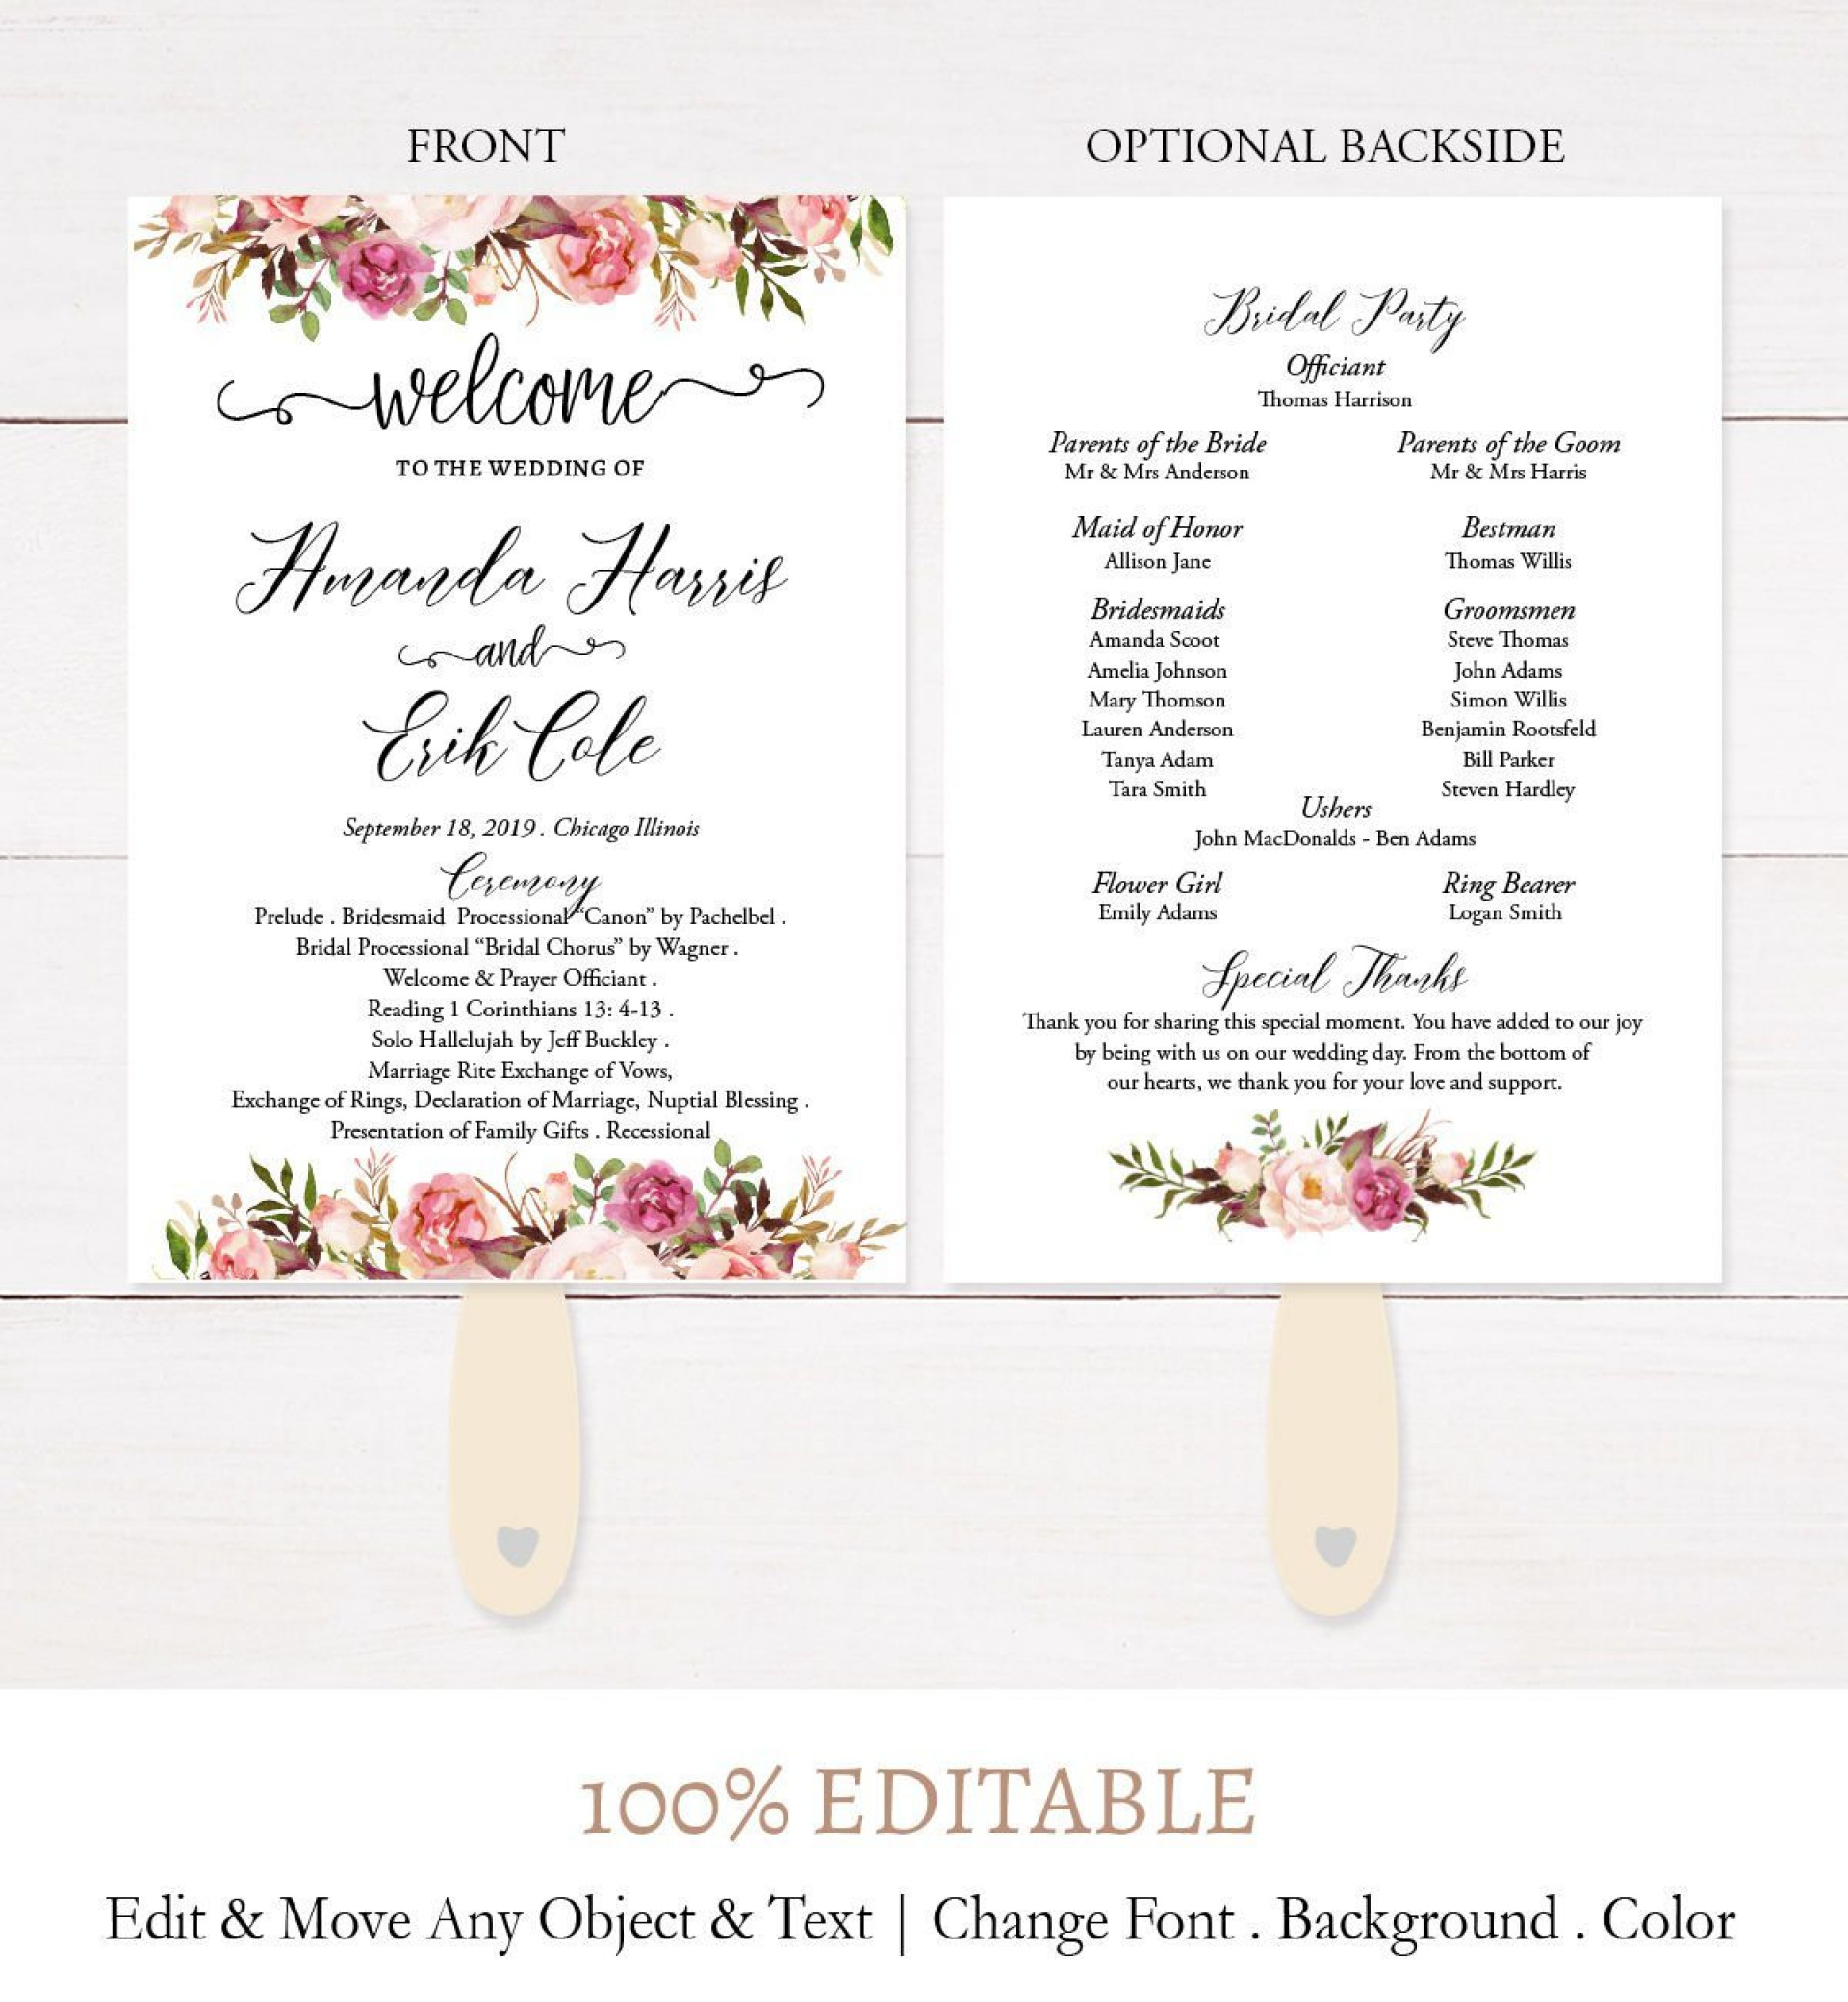 002 Awesome Wedding Program Fan Template Concept  Free Word Paddle Downloadable That Can Be Printed1920